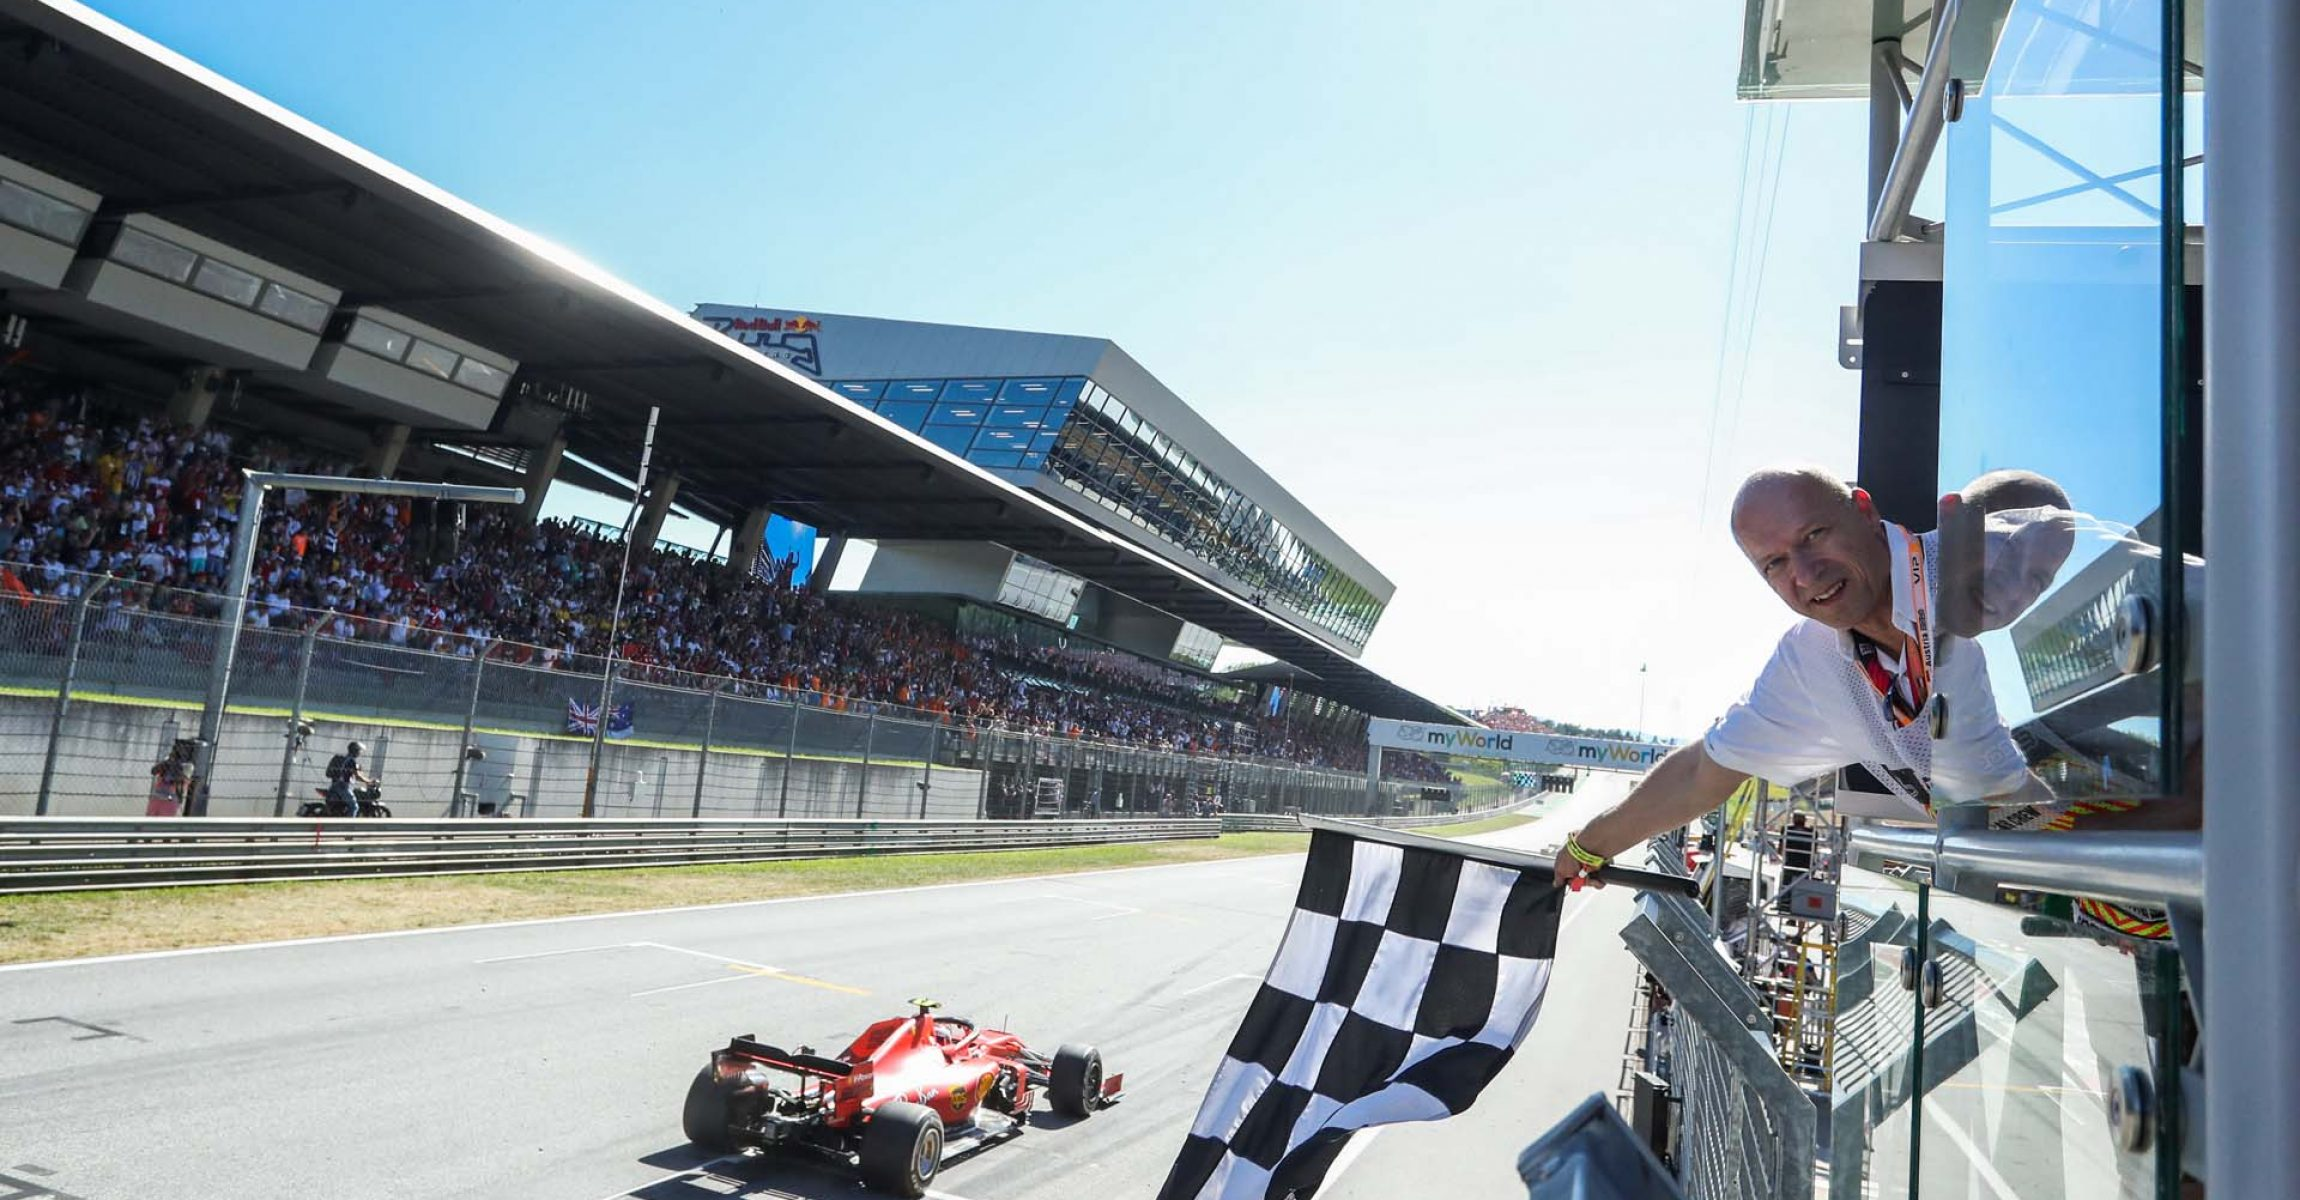 SPIELBERG,AUSTRIA,30.JUN.19 - MOTORSPORTS, FORMULA 1 - Grand Prix of Austria, Red Bull Ring. Image shows Charles Leclerc (MON/ Ferrari) and the superfan. Photo: GEPA pictures/ Daniel Goetzhaber - For editorial use only. Image is free of charge.